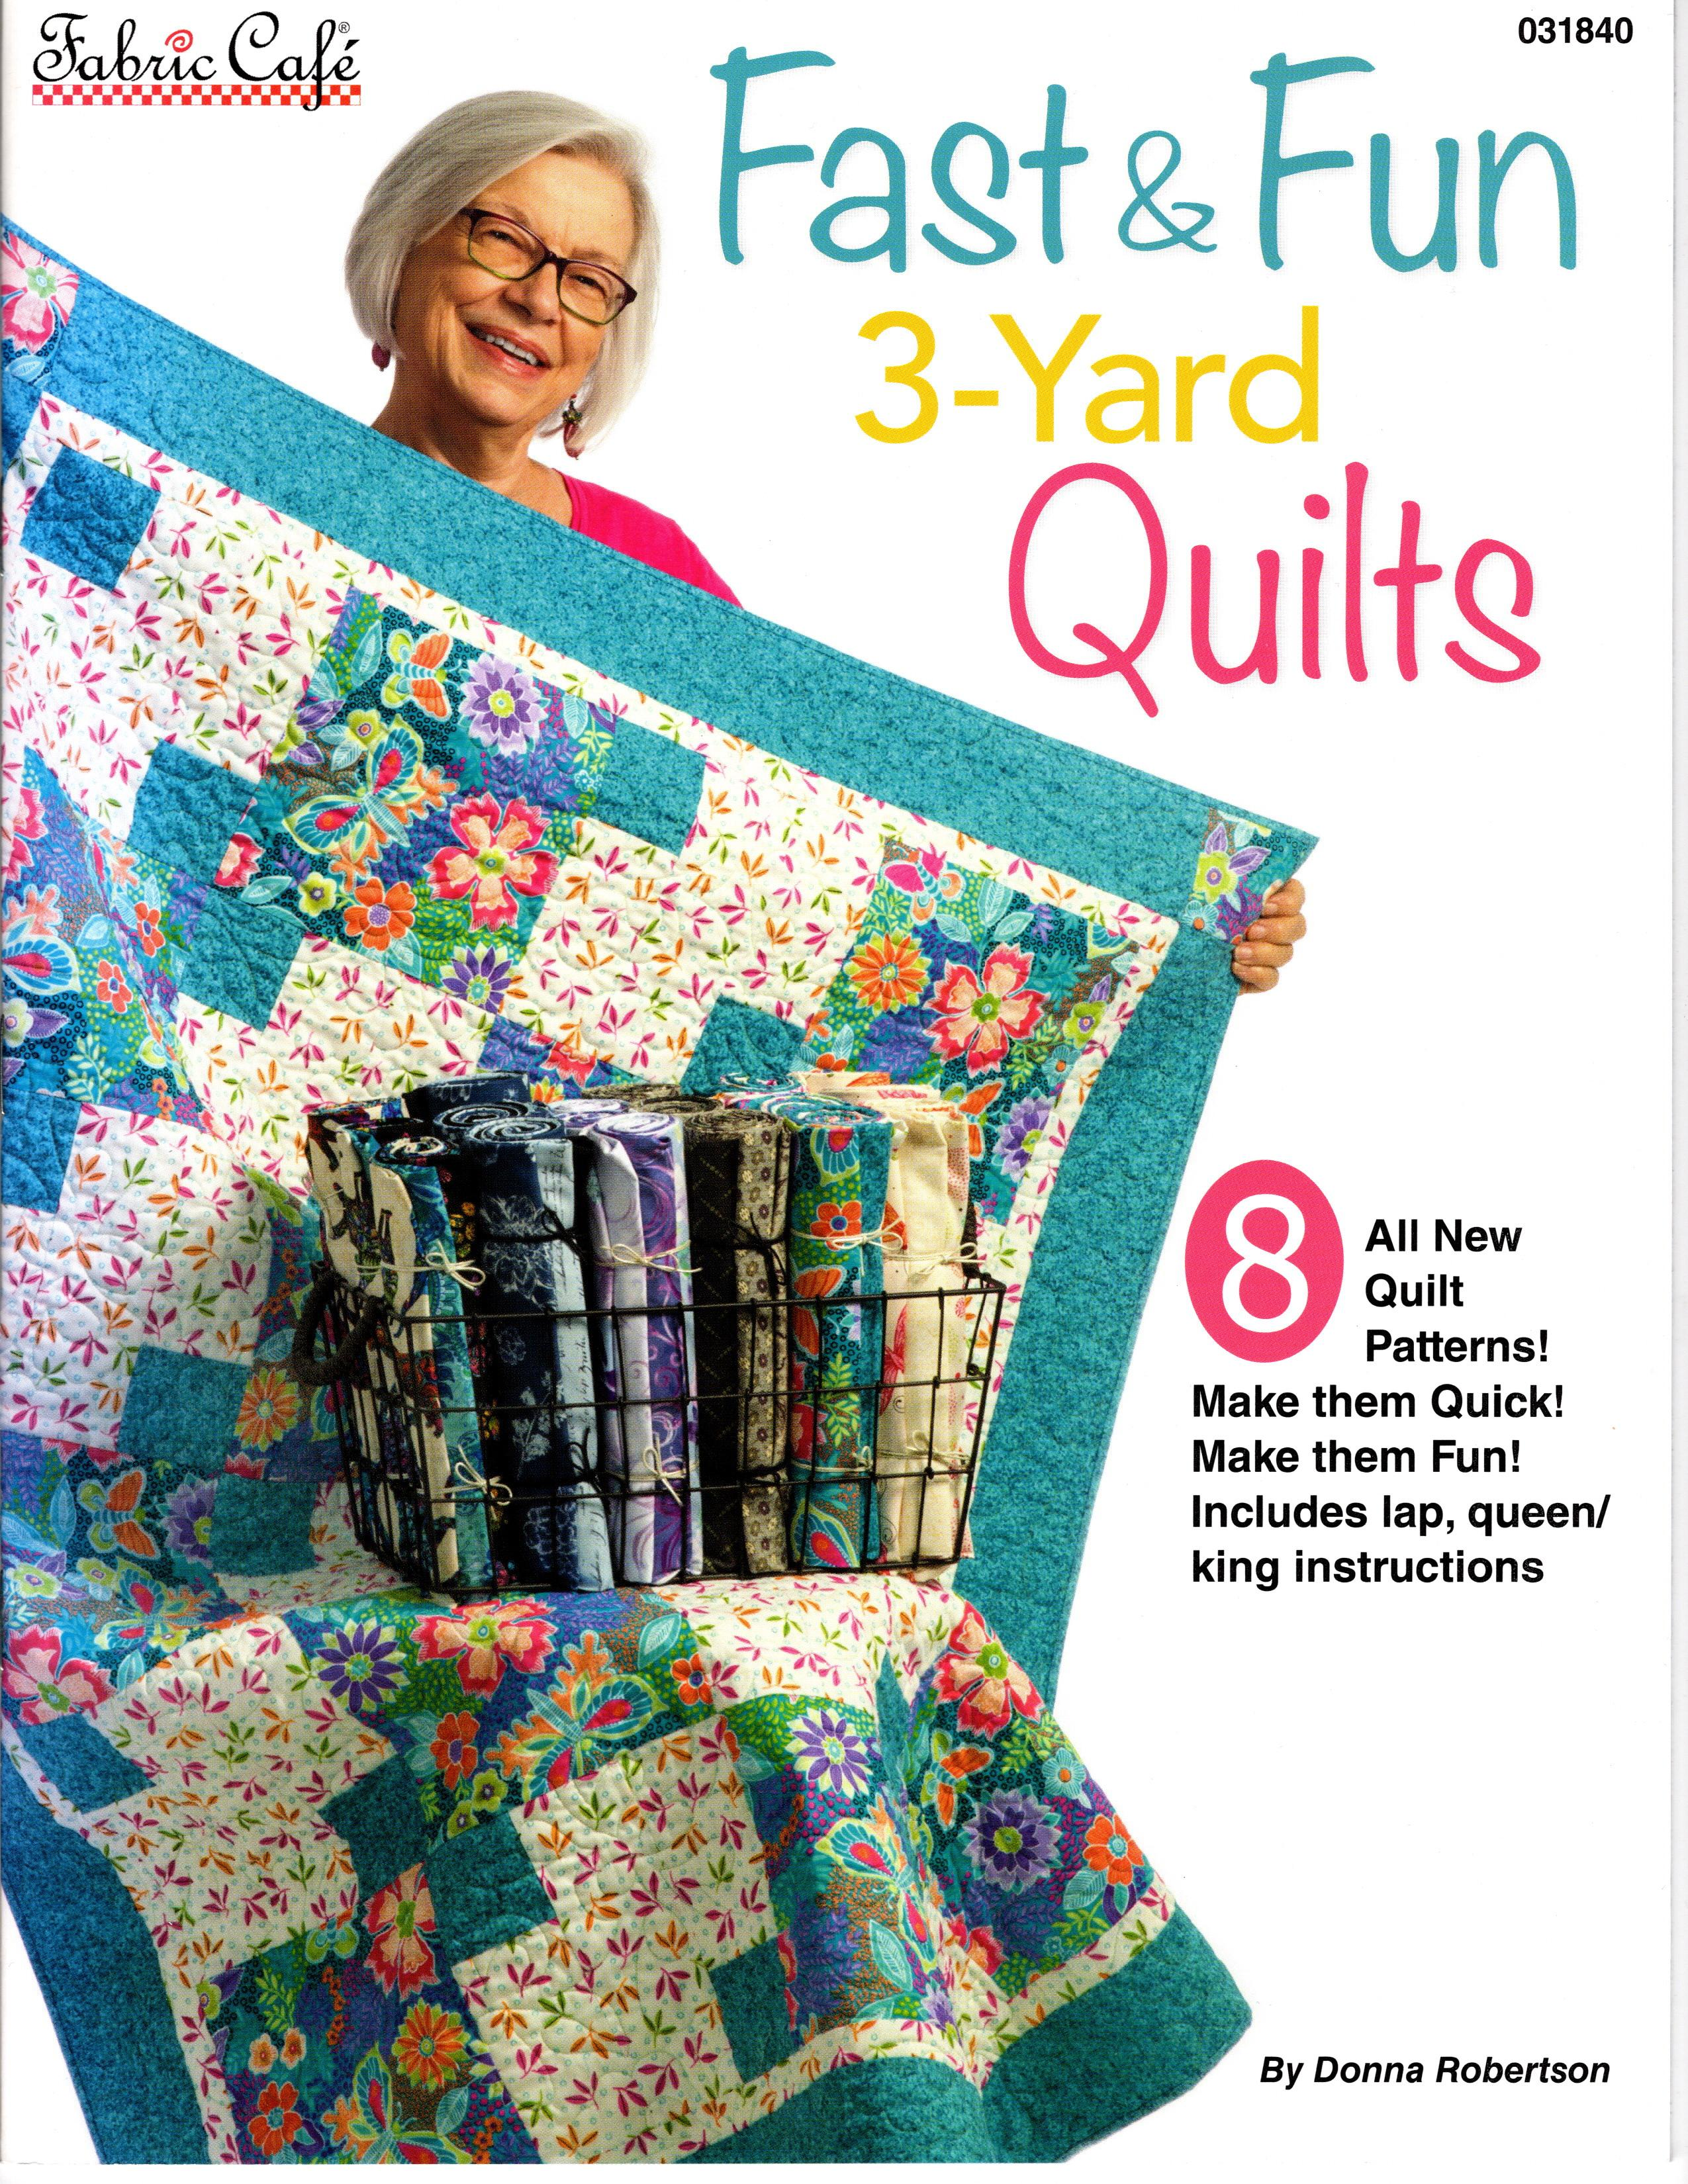 3-Yard Quilts - Fast & Fun